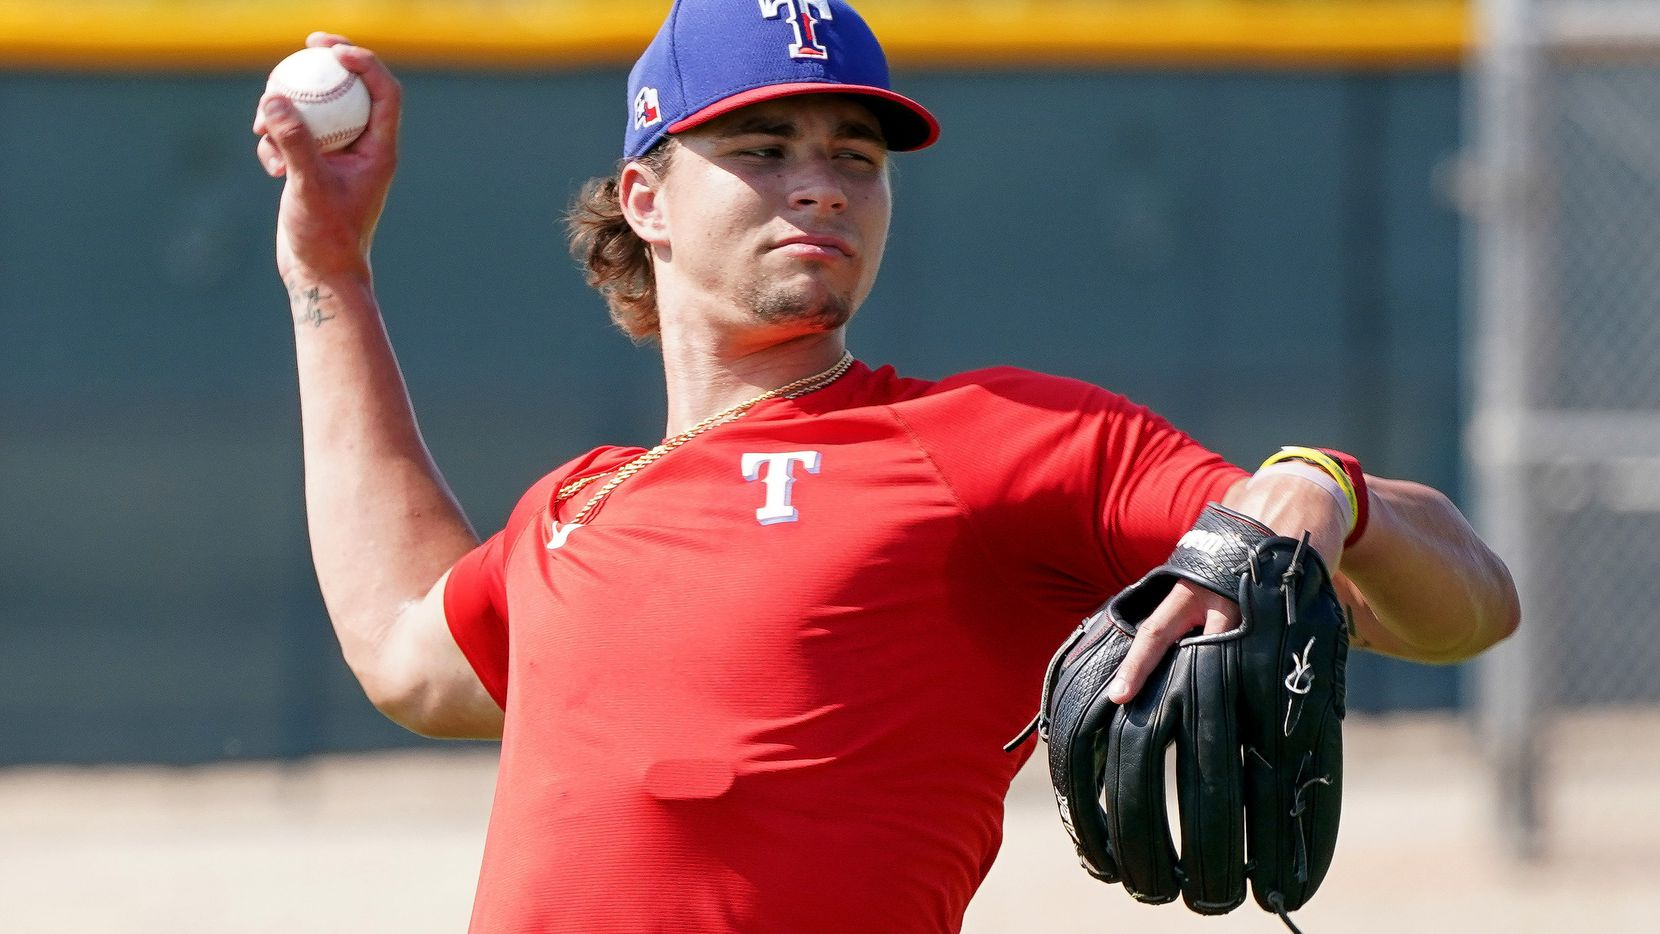 Texas Rangers top pitching prospect Ricky Vanasco rehabs with warm-up tosses at the Rangers Spring Training Facility in Surprise, AZ  Sept, 9, 2021.